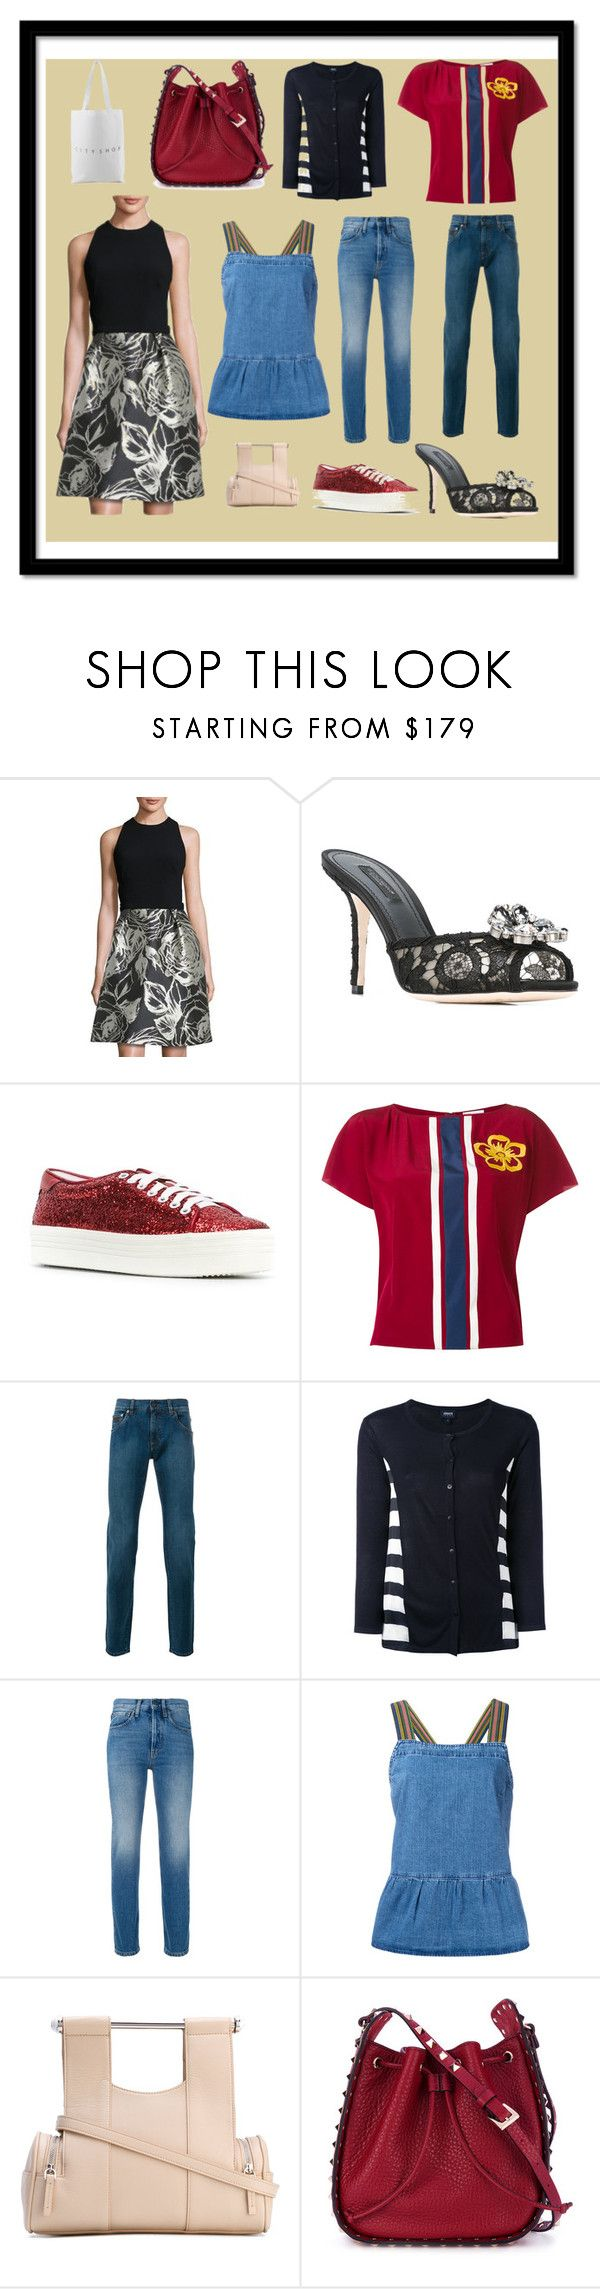 """Fancy Sale"" by cate-jennifer ❤ liked on Polyvore featuring Theia, Dolce&Gabbana, Yves Saint Laurent, RED Valentino, Salvatore Ferragamo, Armani Jeans, Ports 1961, M.i.h Jeans, Corto Moltedo and Valentino"